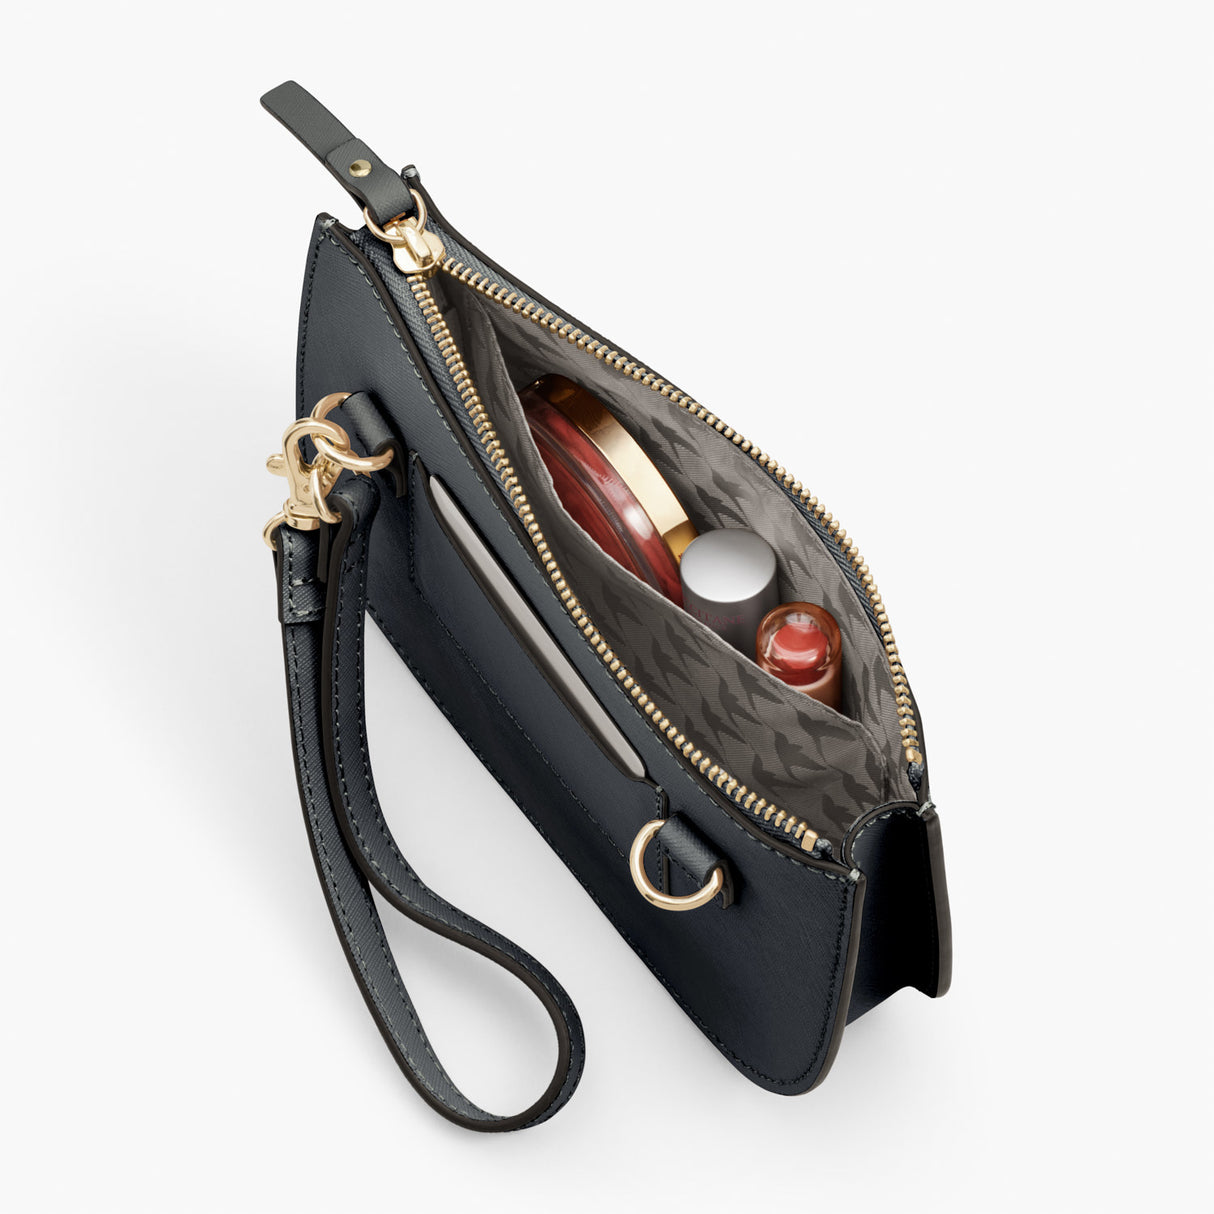 Interior Pocket - Waverley 2 - Saffiano Leather - Dark Grey / Gold / Grey - Crossbody Bag - Lo & Sons